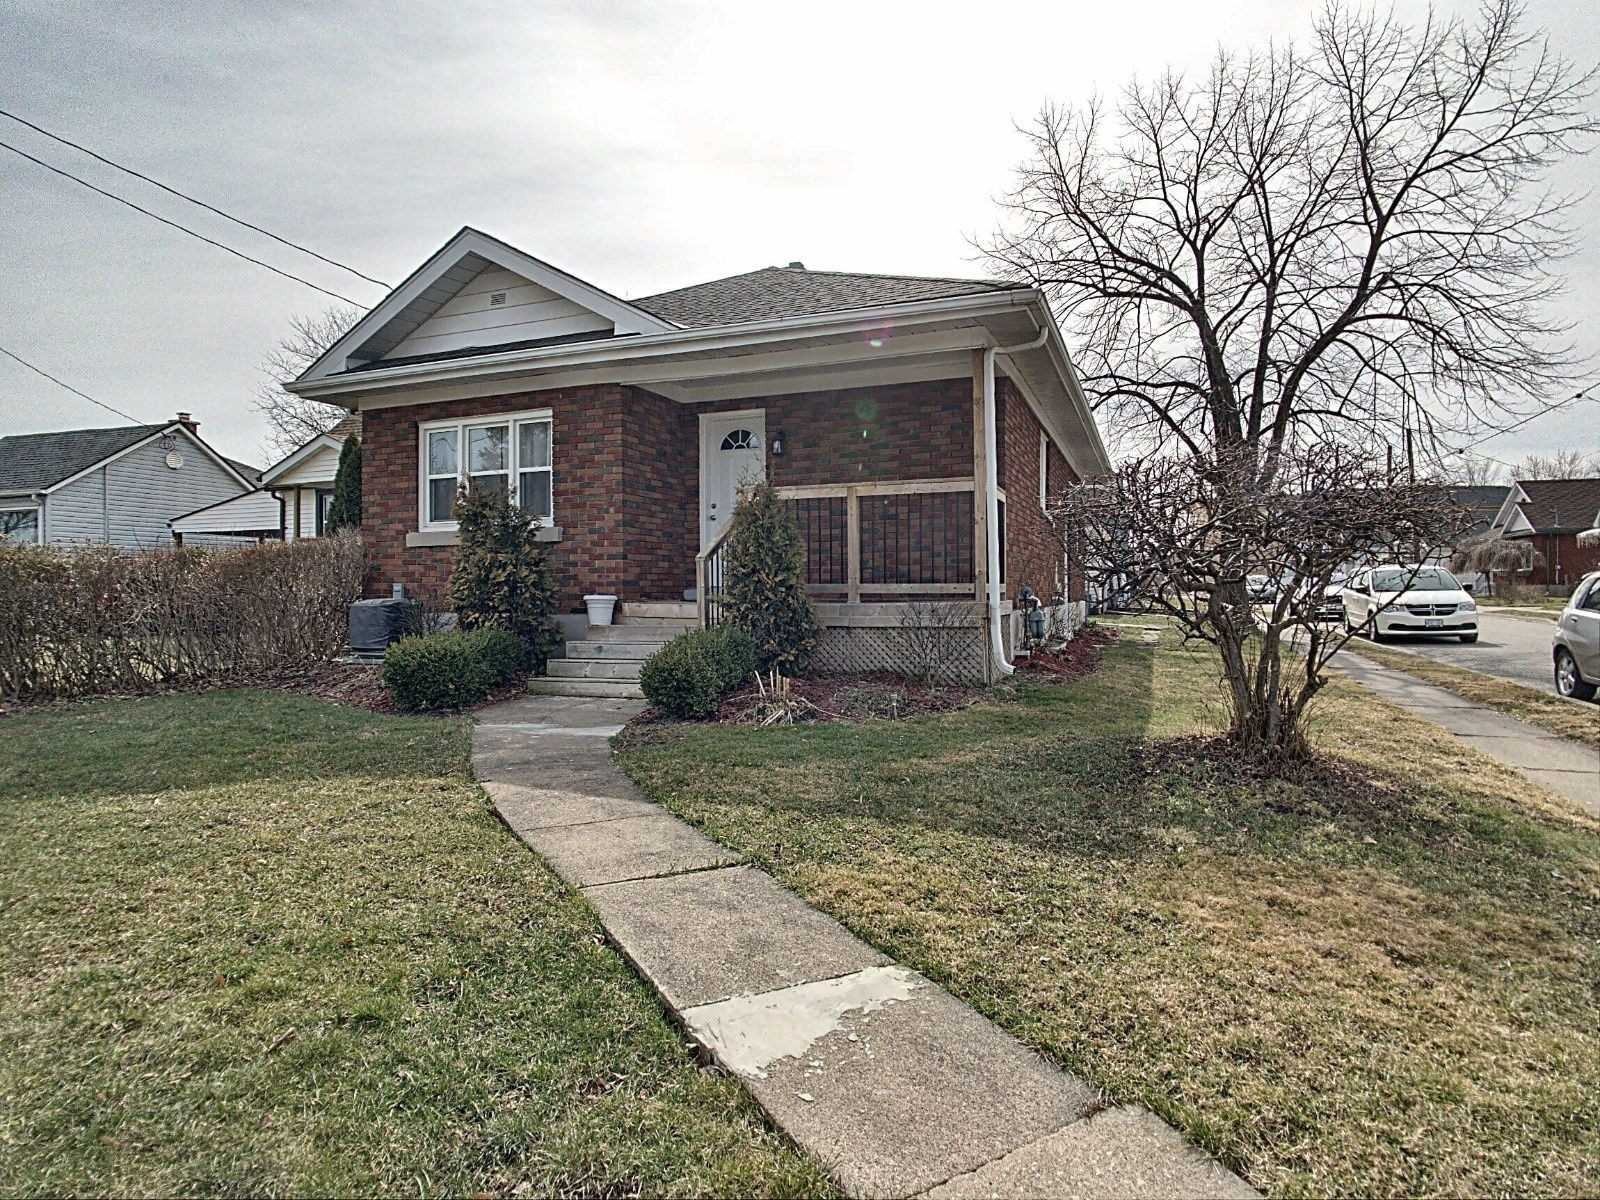 pictures of house for sale MLS: X4731419 located at 28 Manning St, St. Catharines L2R1J2